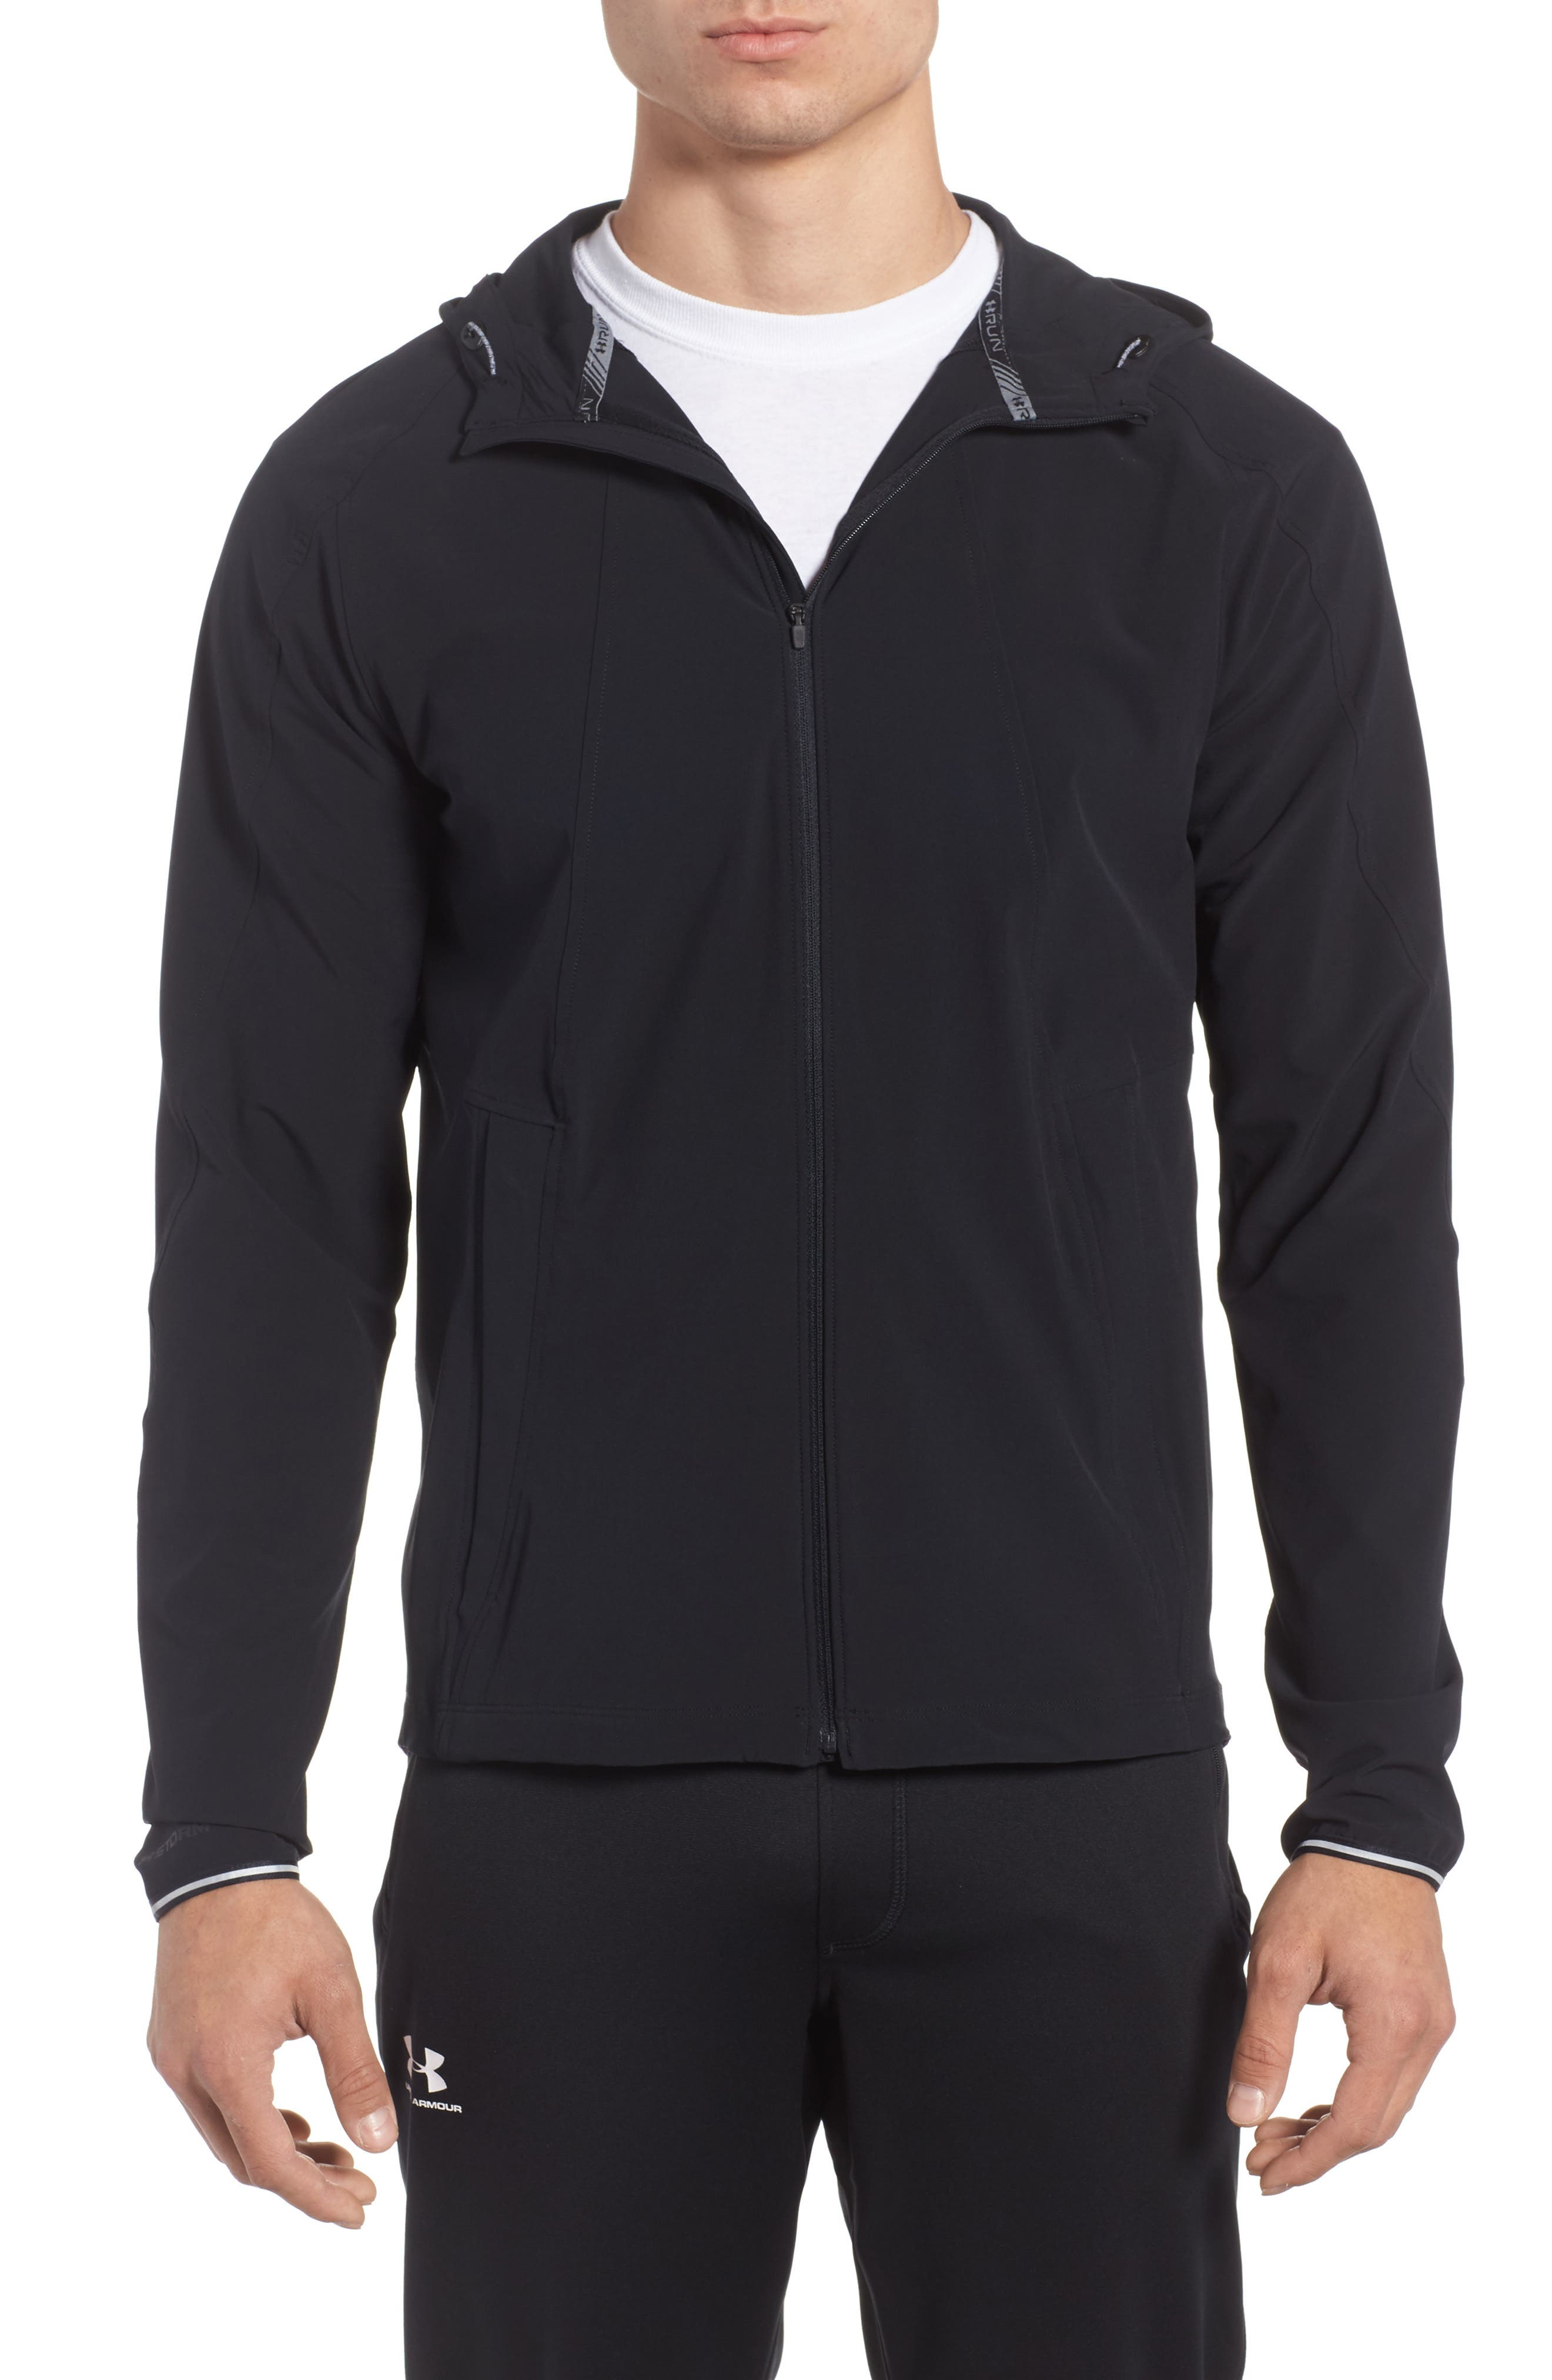 Outrun the Storm Jacket,                         Main,                         color, 001